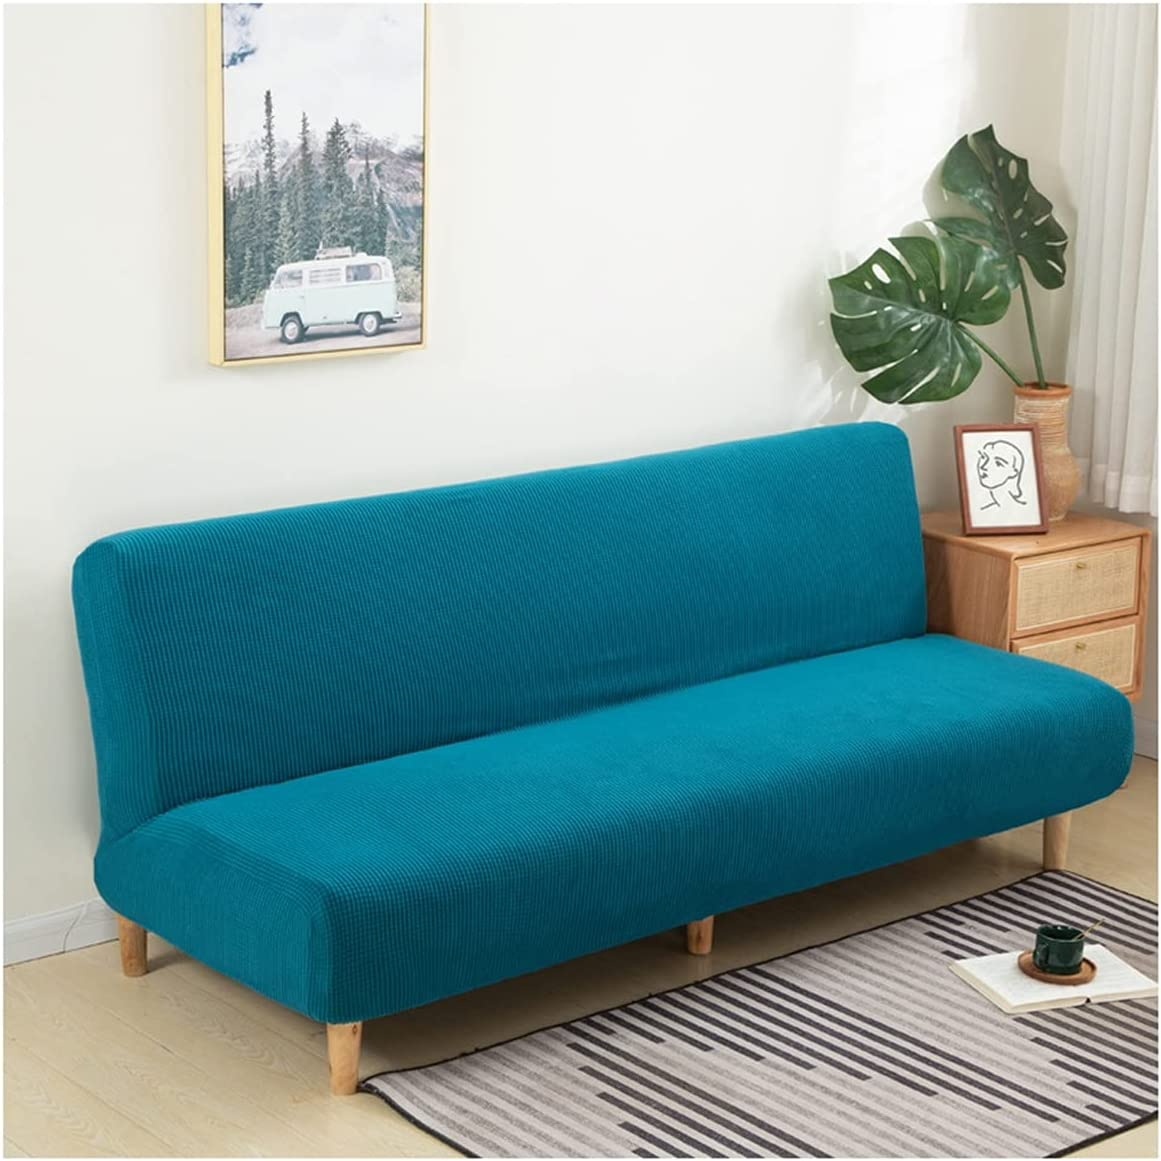 LYLSXY Stretch Futon Cover Universal Non Bargain sale Sofa Armless Slipcover Opening large release sale